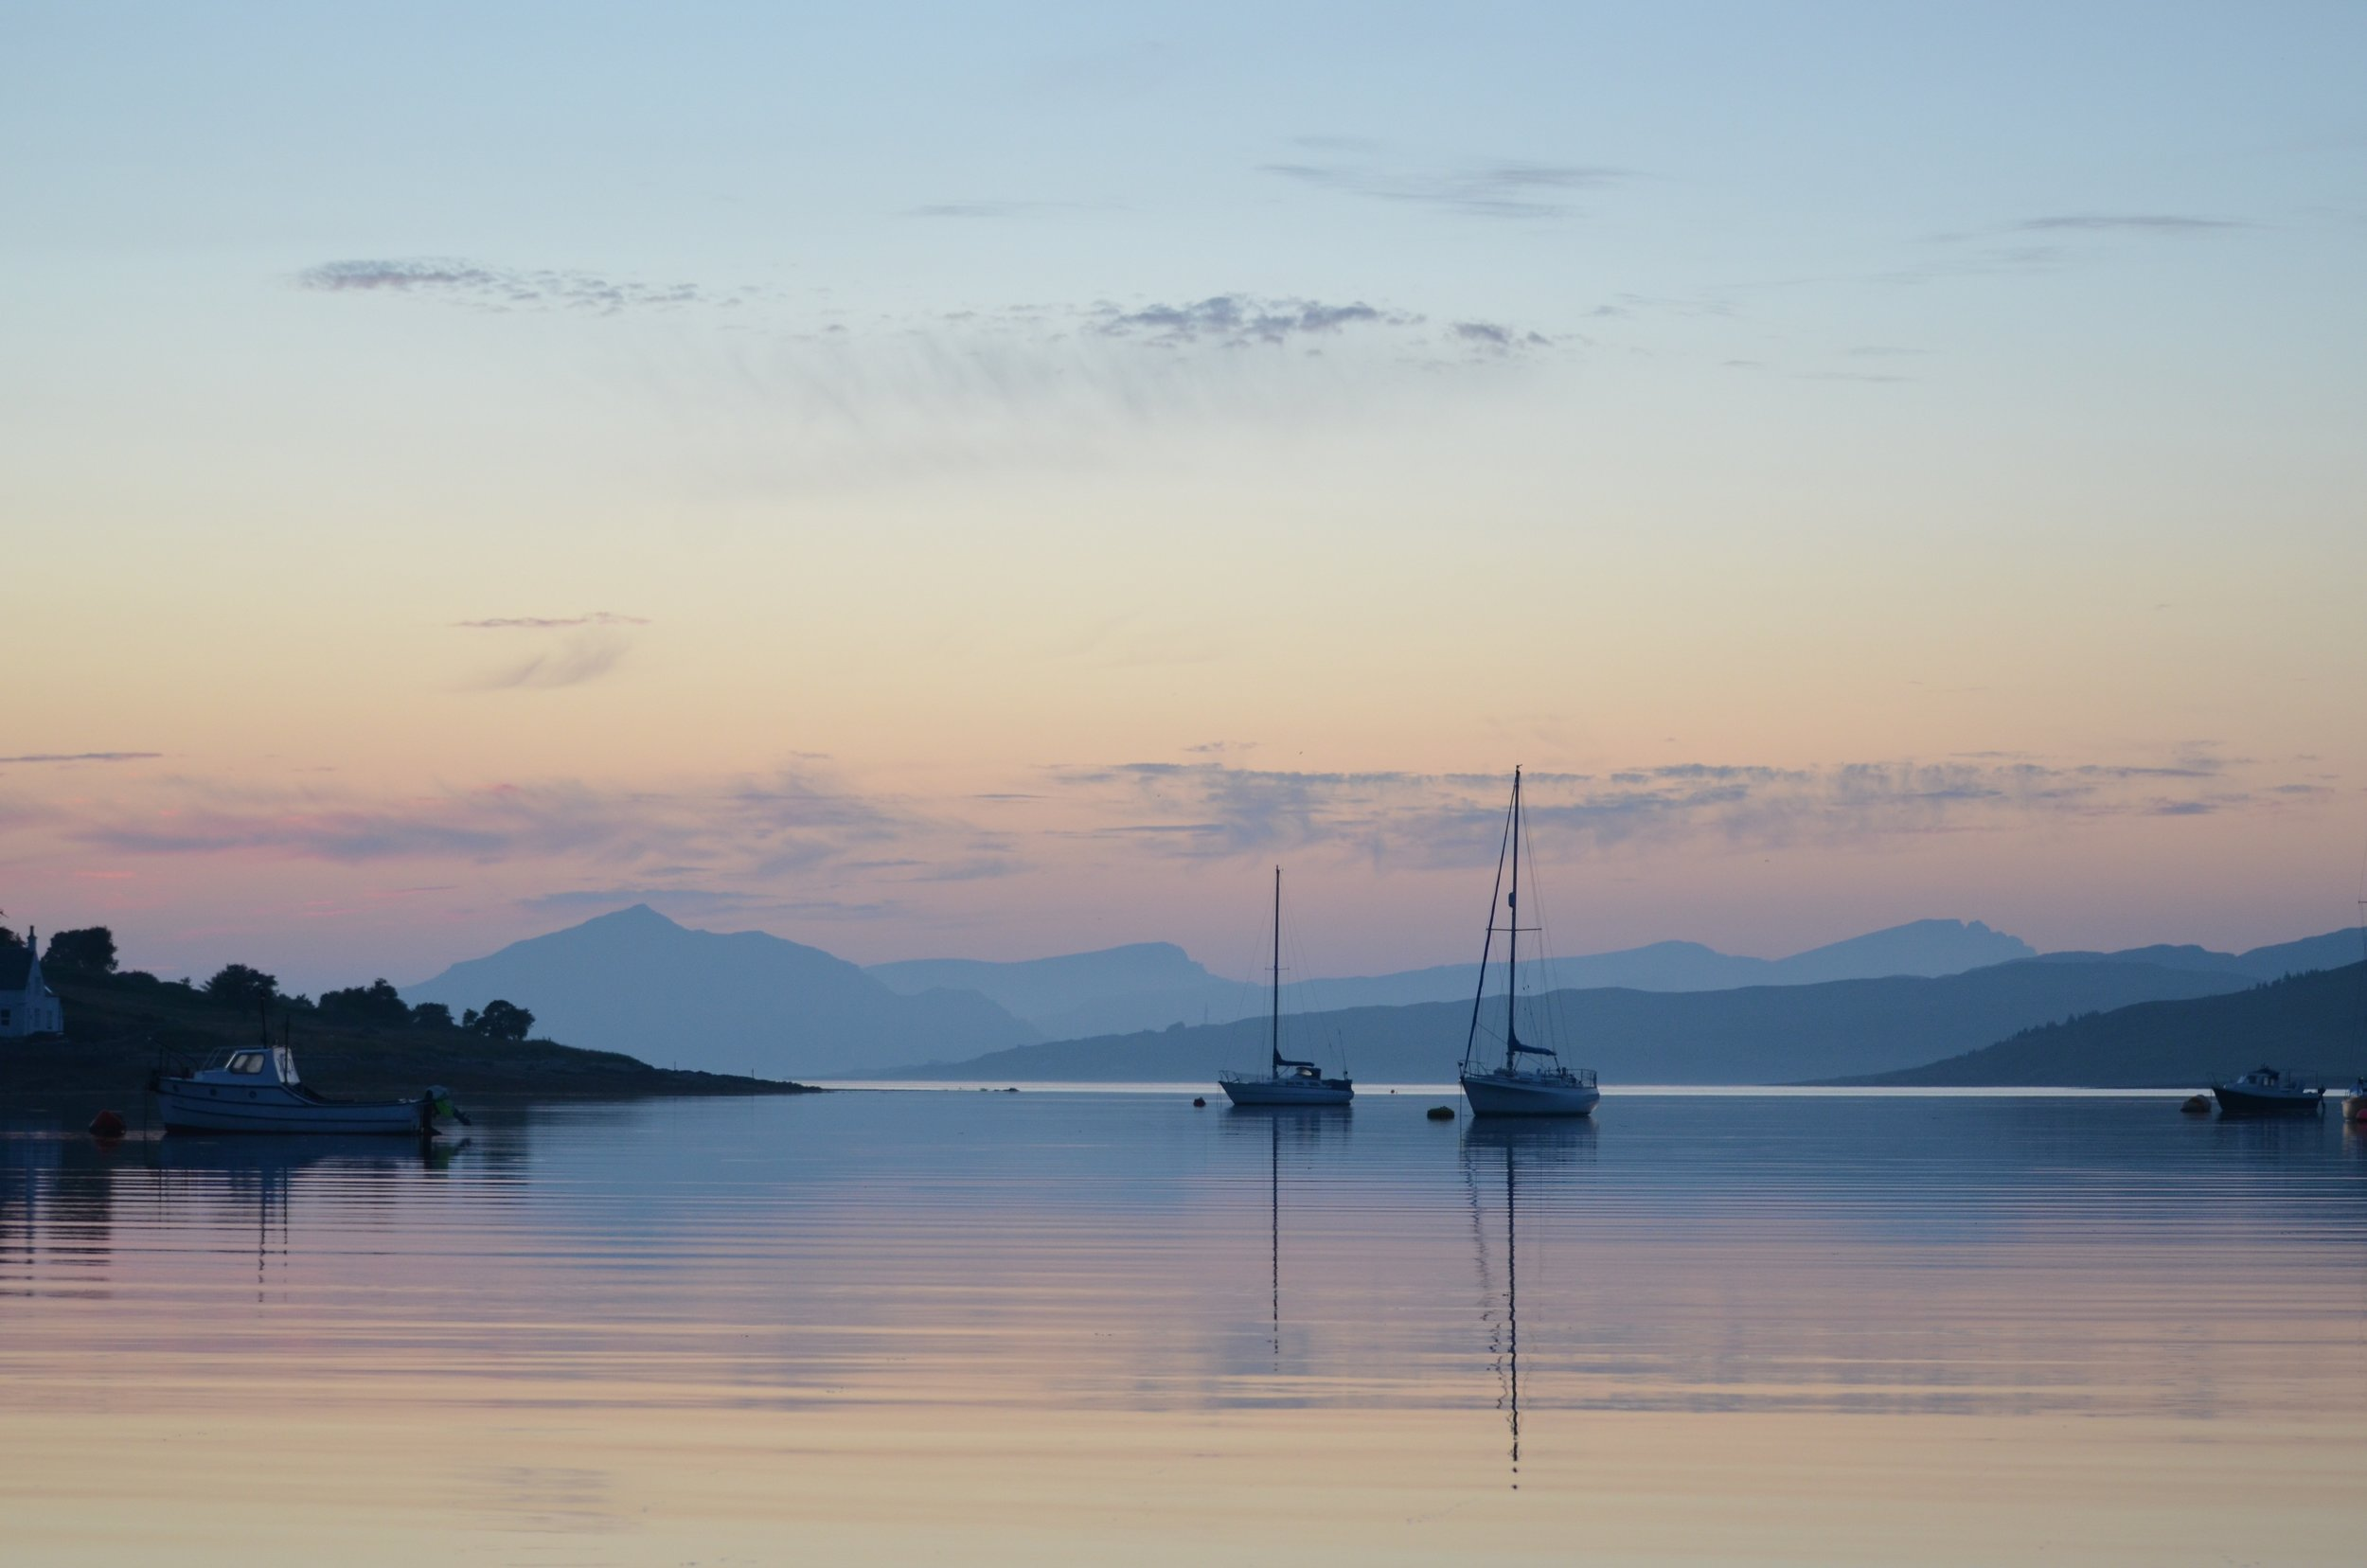 Visit Loch Ness - About an hour's drive away is one of Scotland's greatest known landmarks. Take a boat out, stroll lochside, or have a search for the ever elusive Loch Ness Monster...